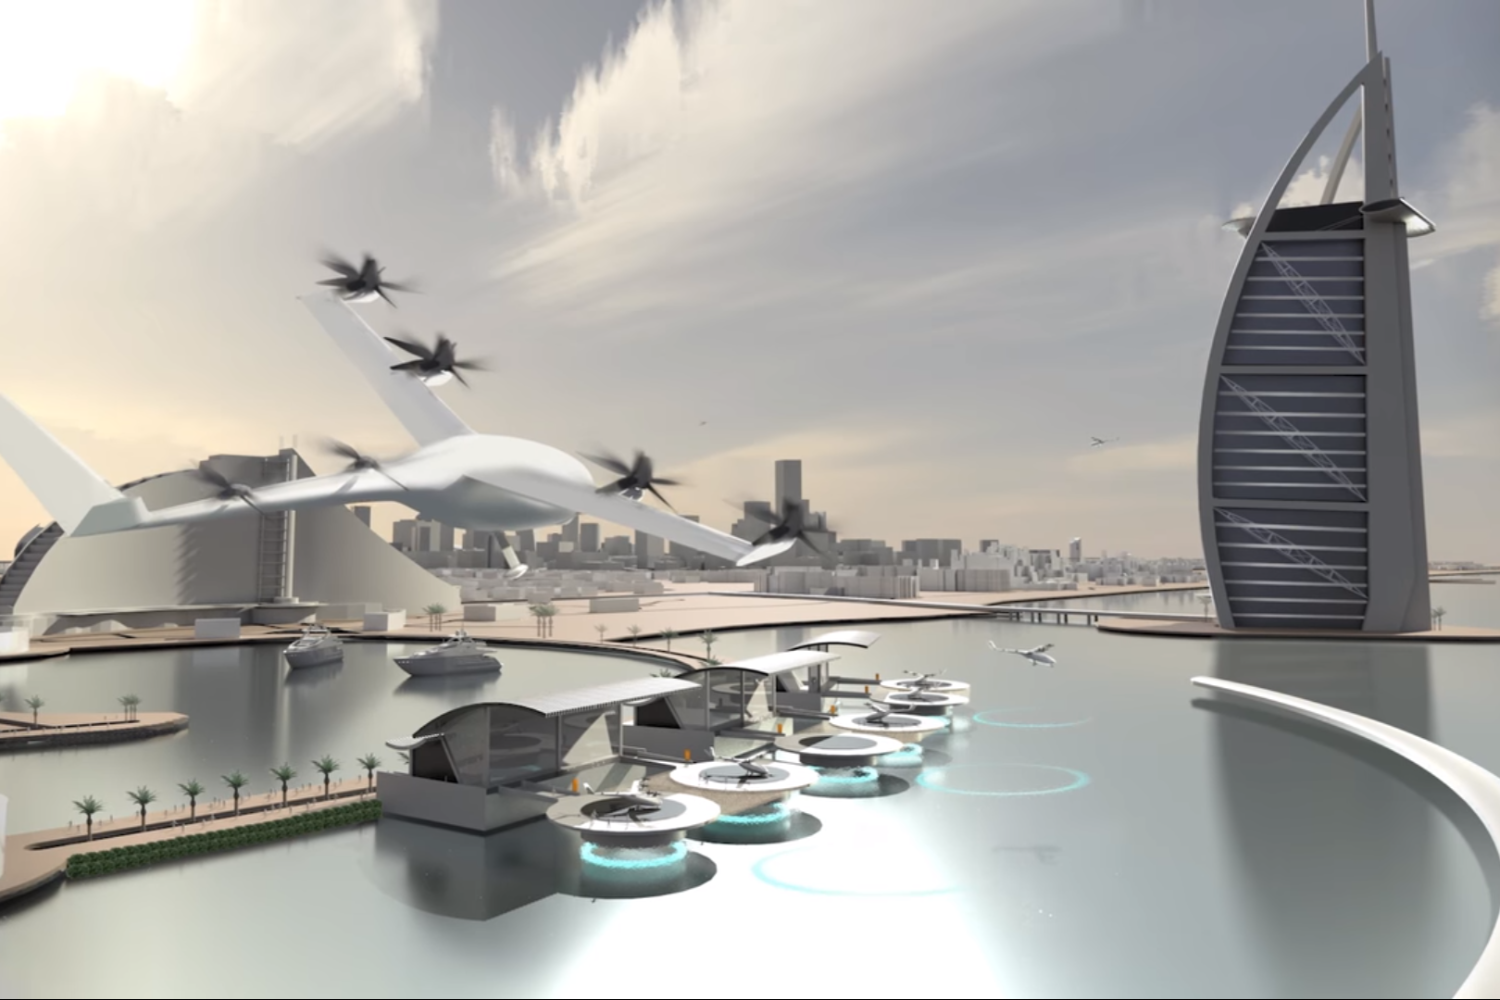 Uber is aiming to launch flying taxis in LA, Dallas and Dubai by 2020